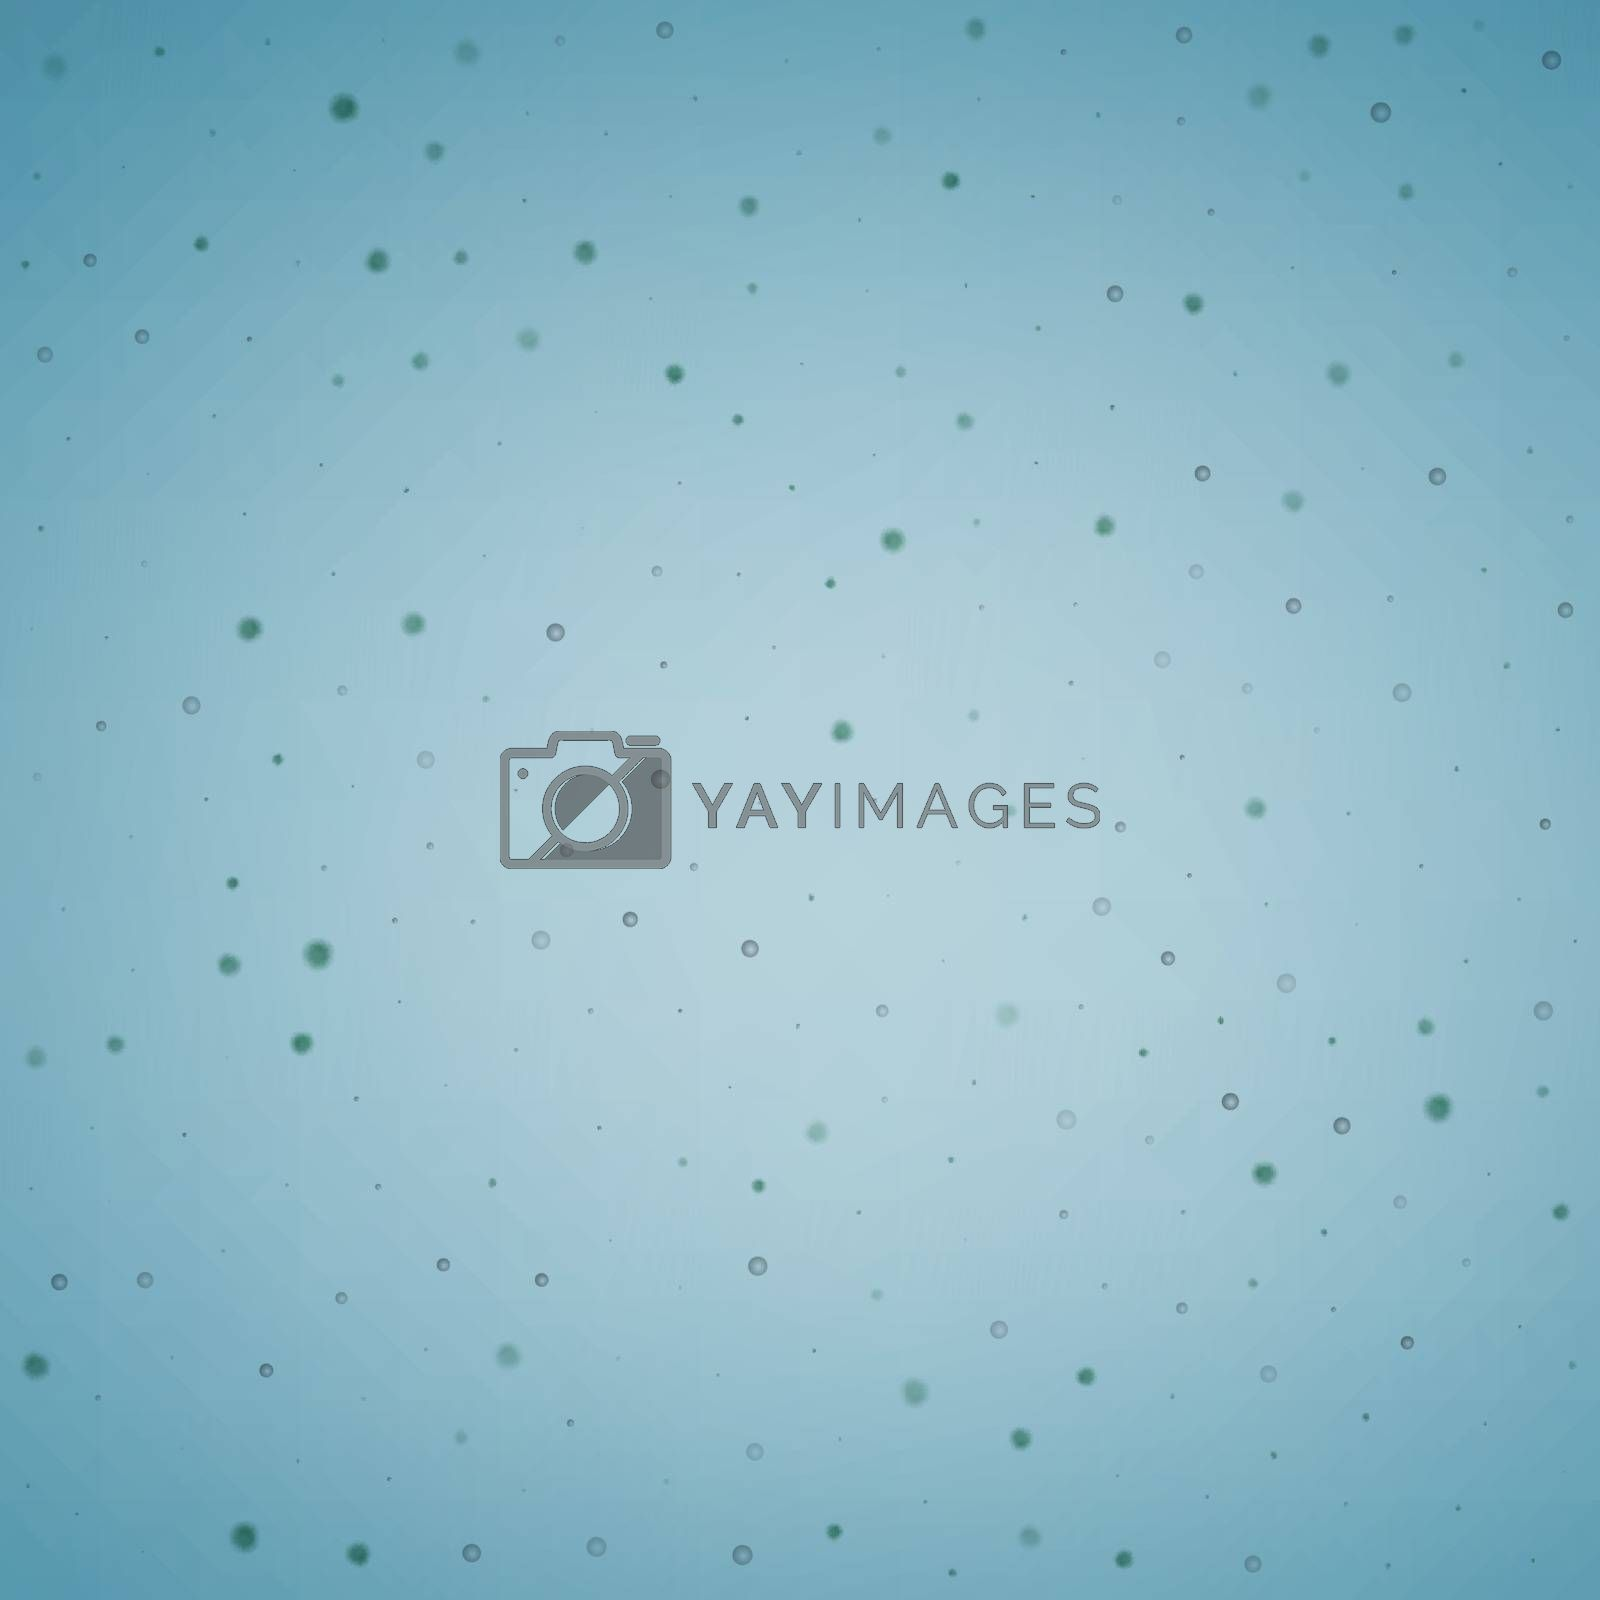 Abstract small spherical particles floating in liquid. Blue vector background illustration